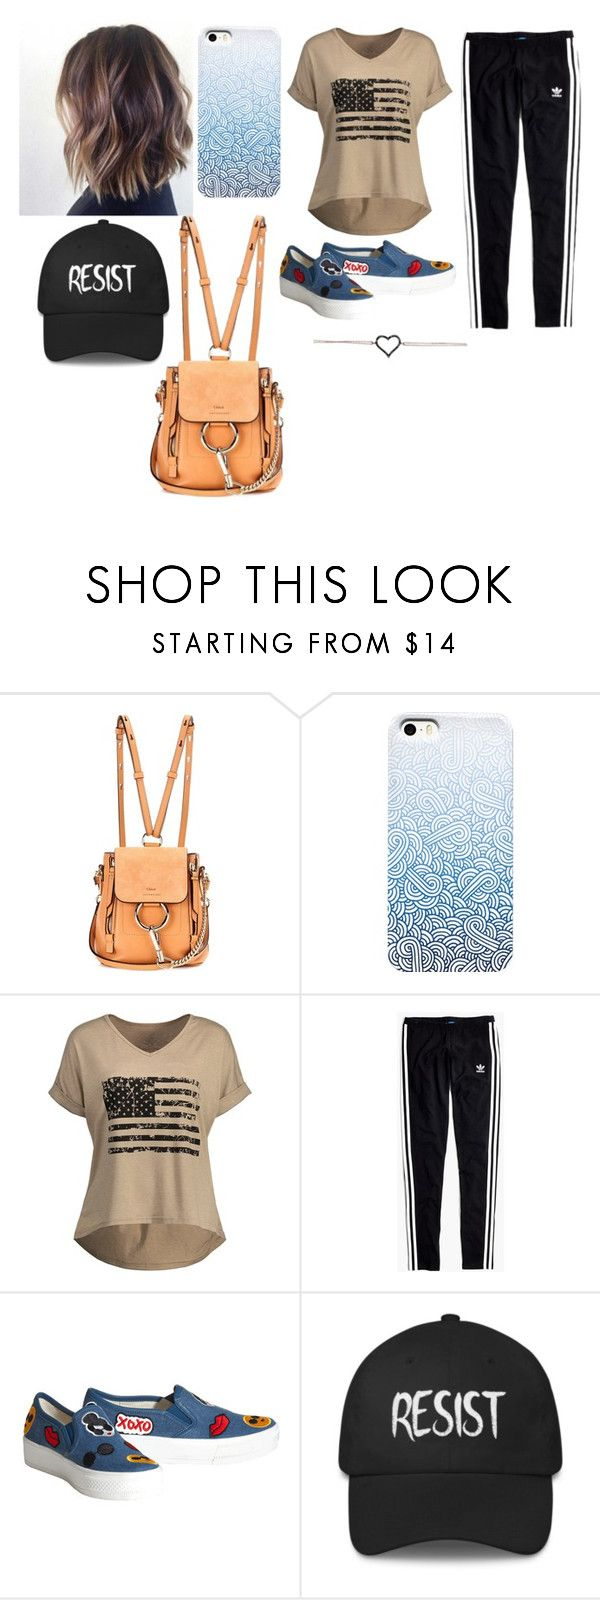 """"""""""" by hsealover ❤ liked on Polyvore featuring Chloé, Madewell and Alice + Olivia"""